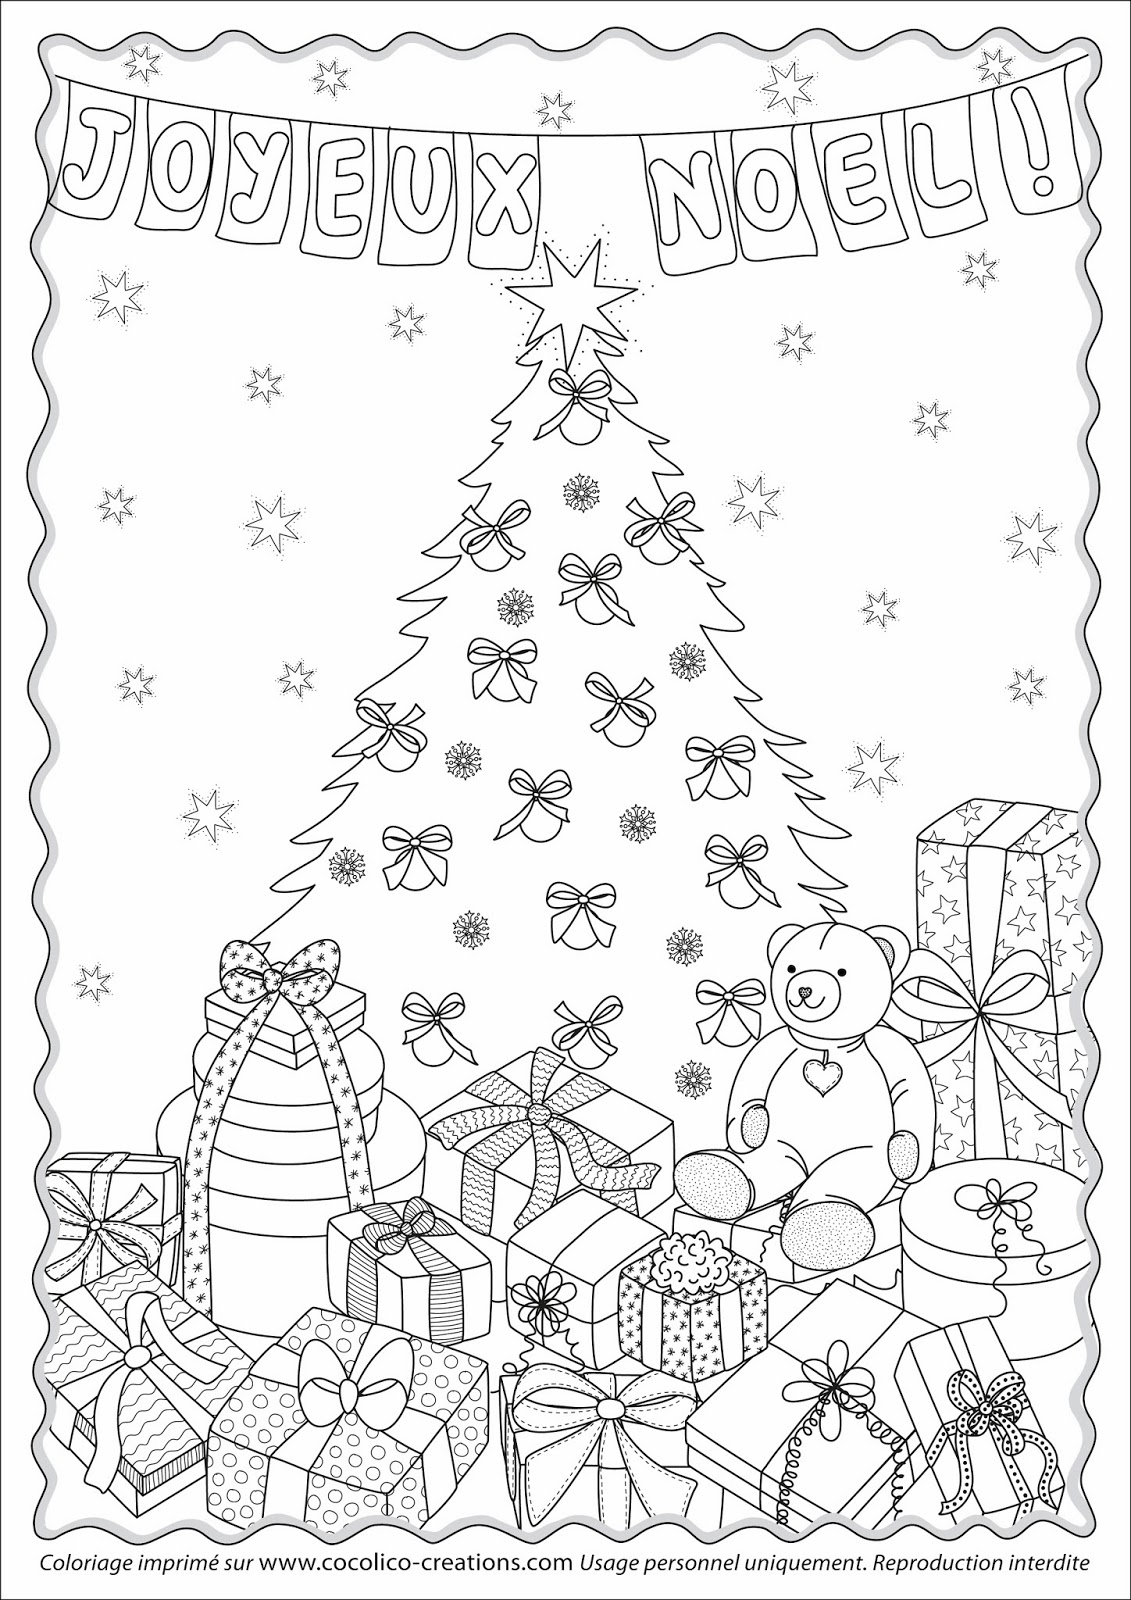 Cocolico creations coloriages - Noel coloriage ...